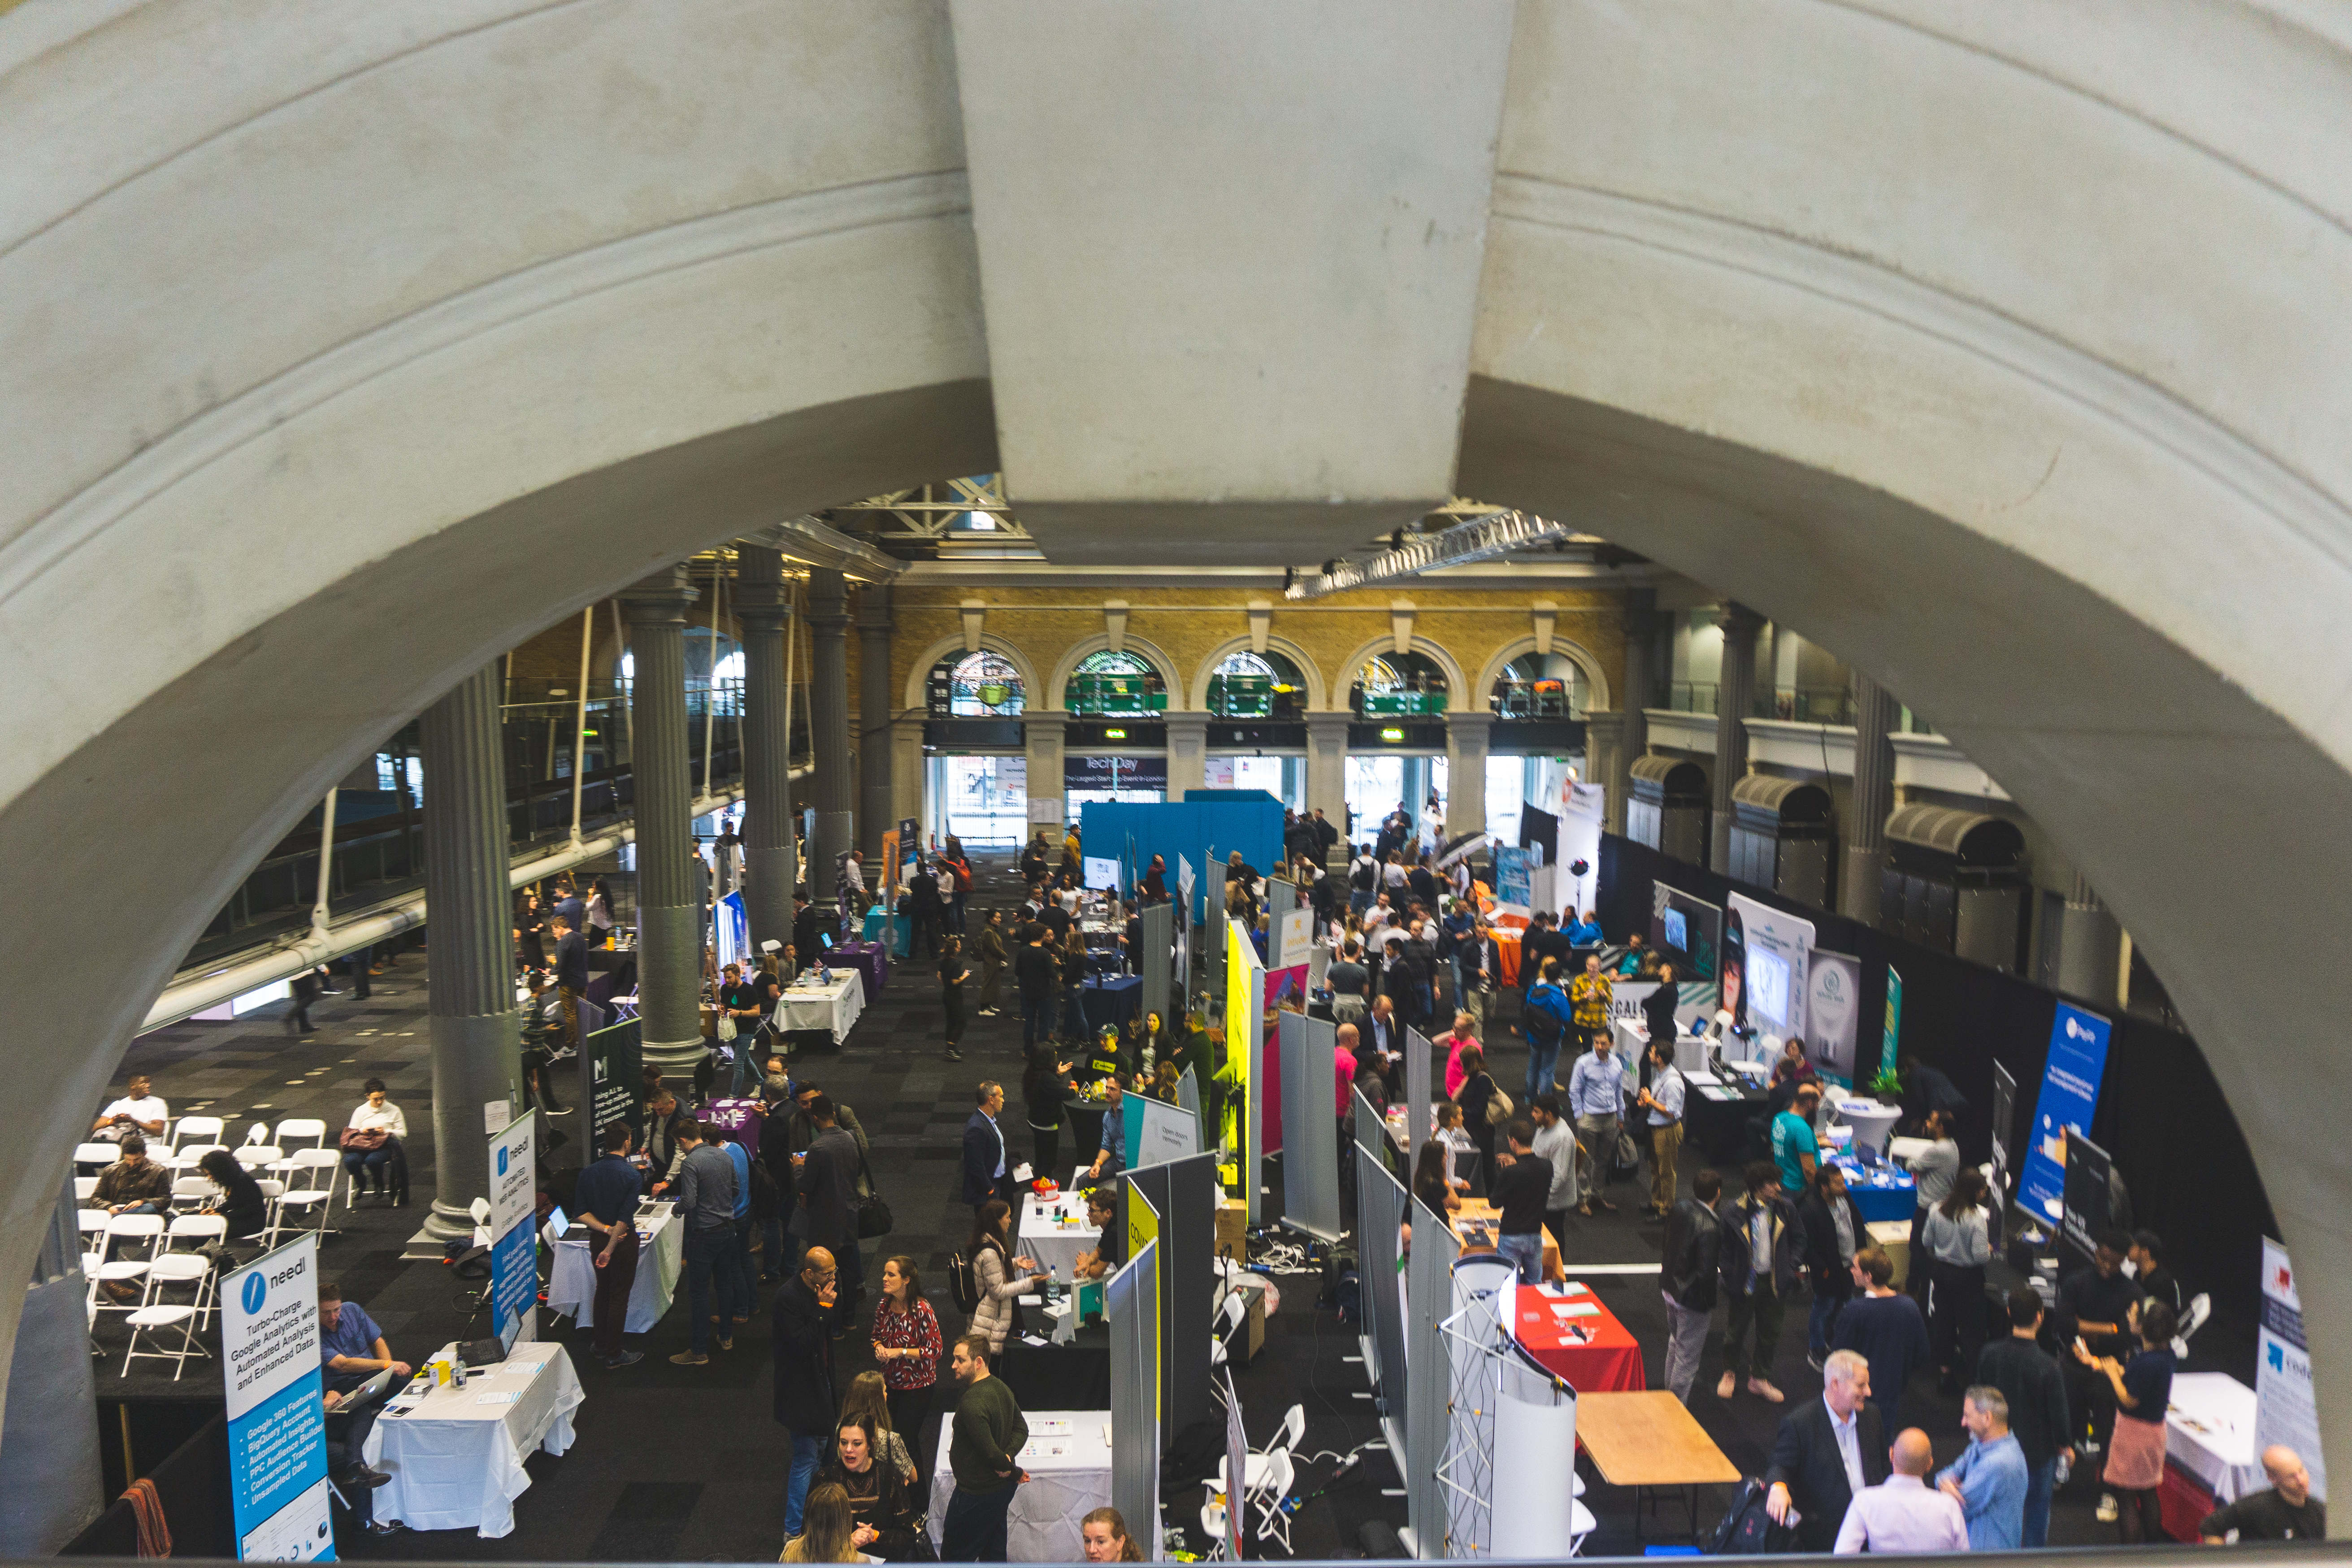 TechDay London in the Old Billingsgate